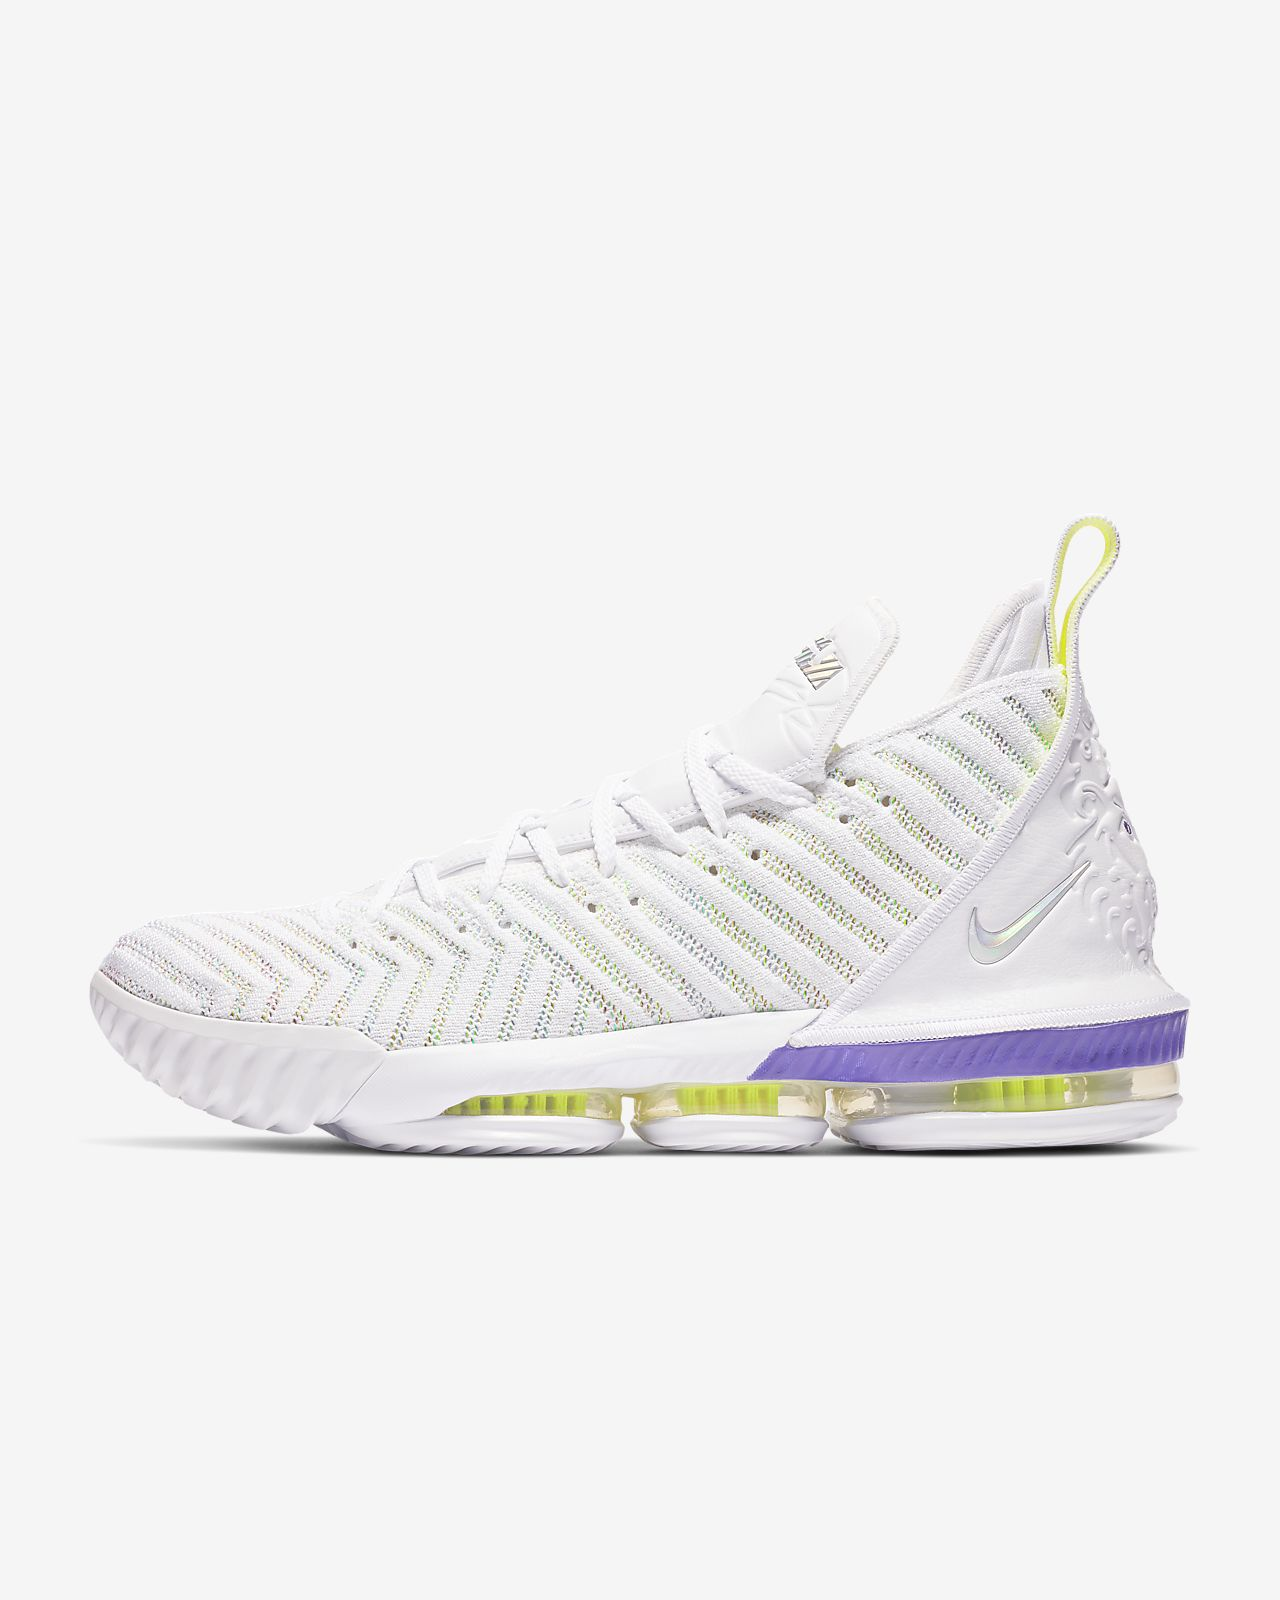 new products 1ba37 06def Basketball Shoe. LeBron 16